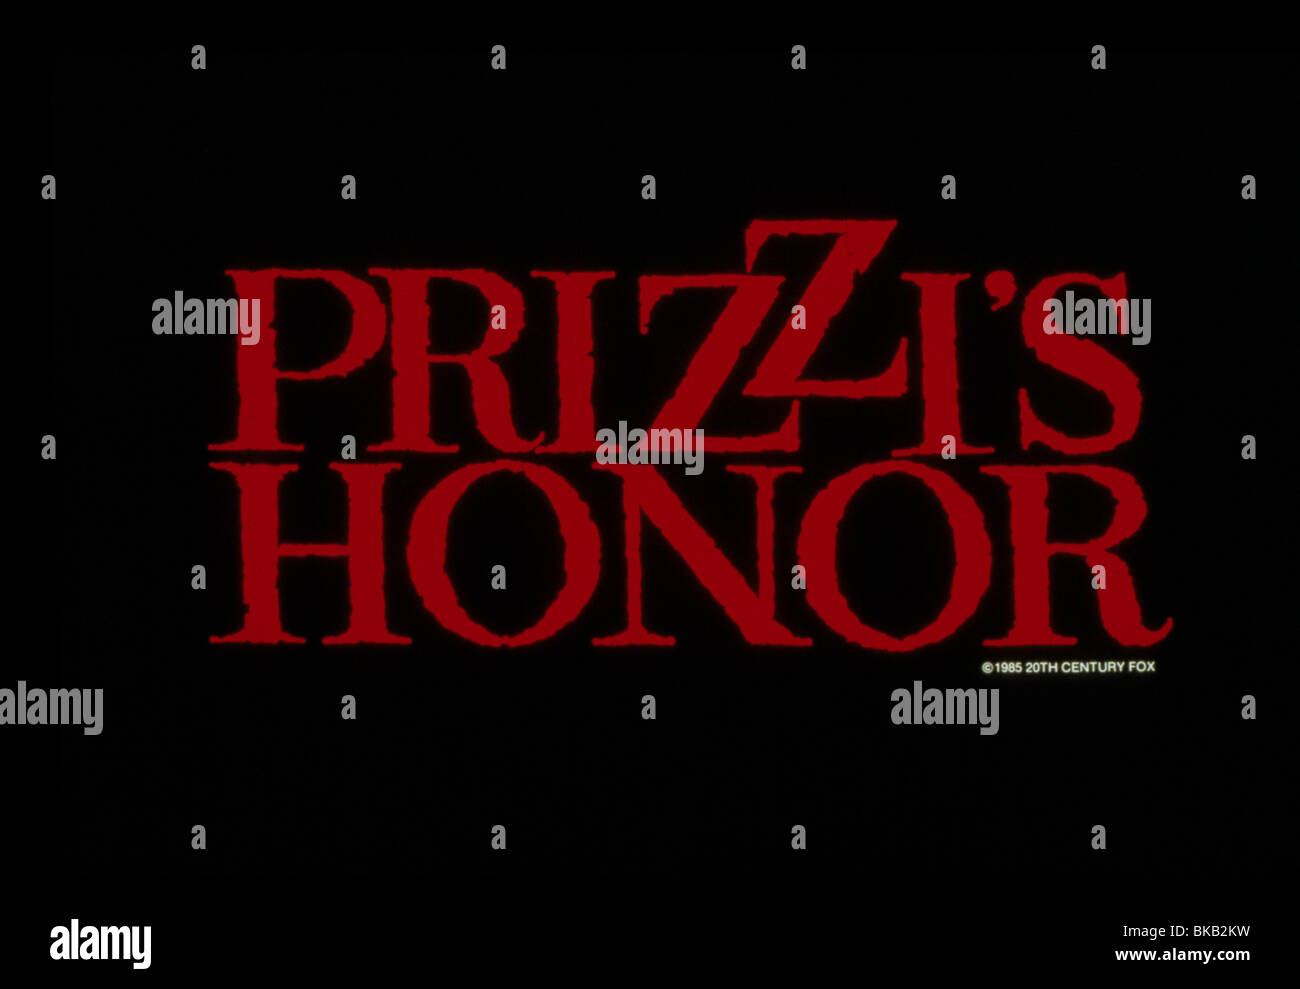 PRIZZI'S HONOR -1985 POSTER - Stock Image